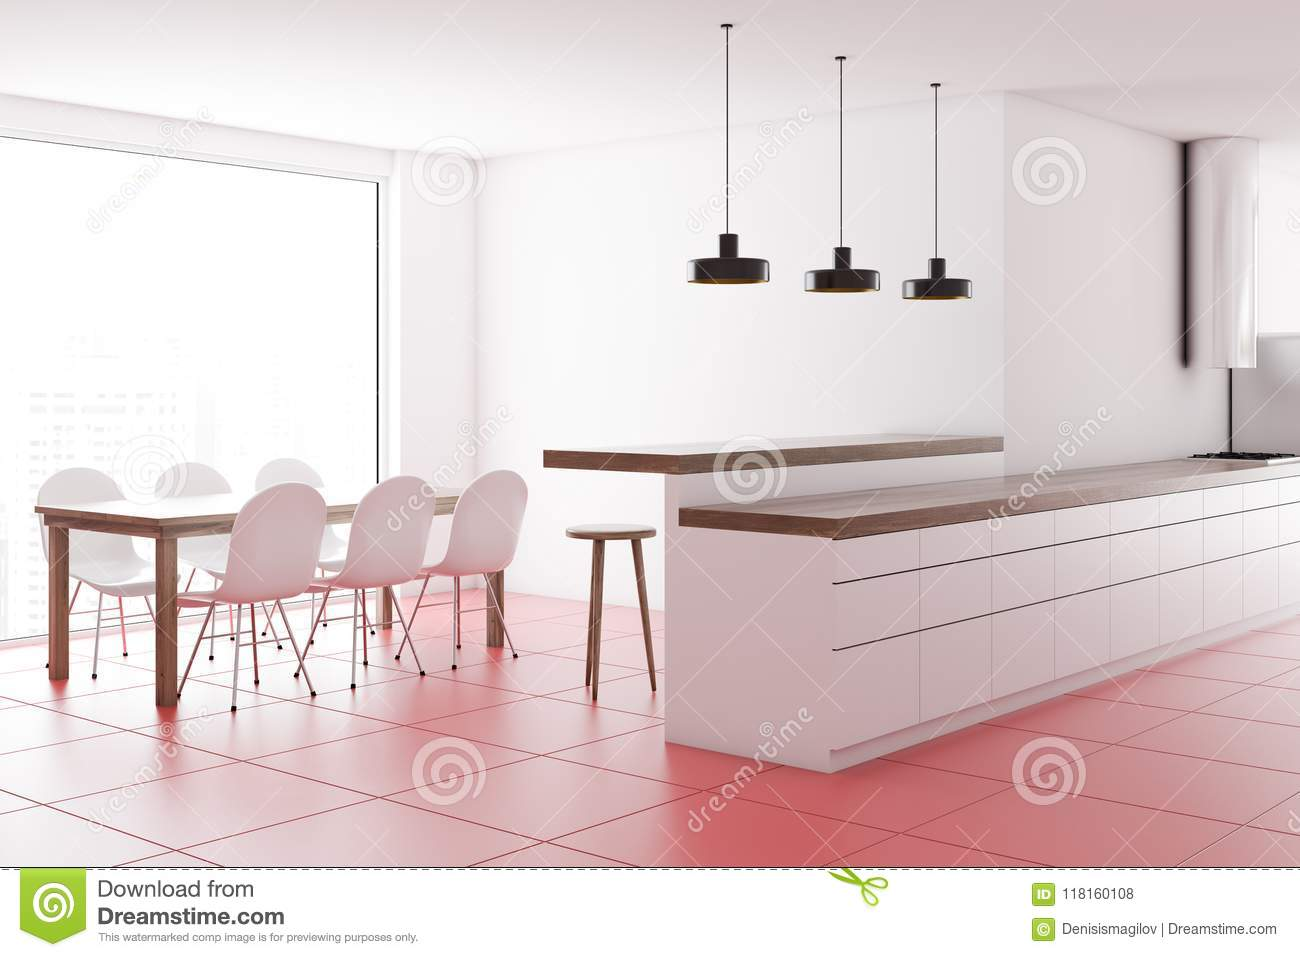 White Countertops In A Pink Floor Kitchen, Table Stock ...